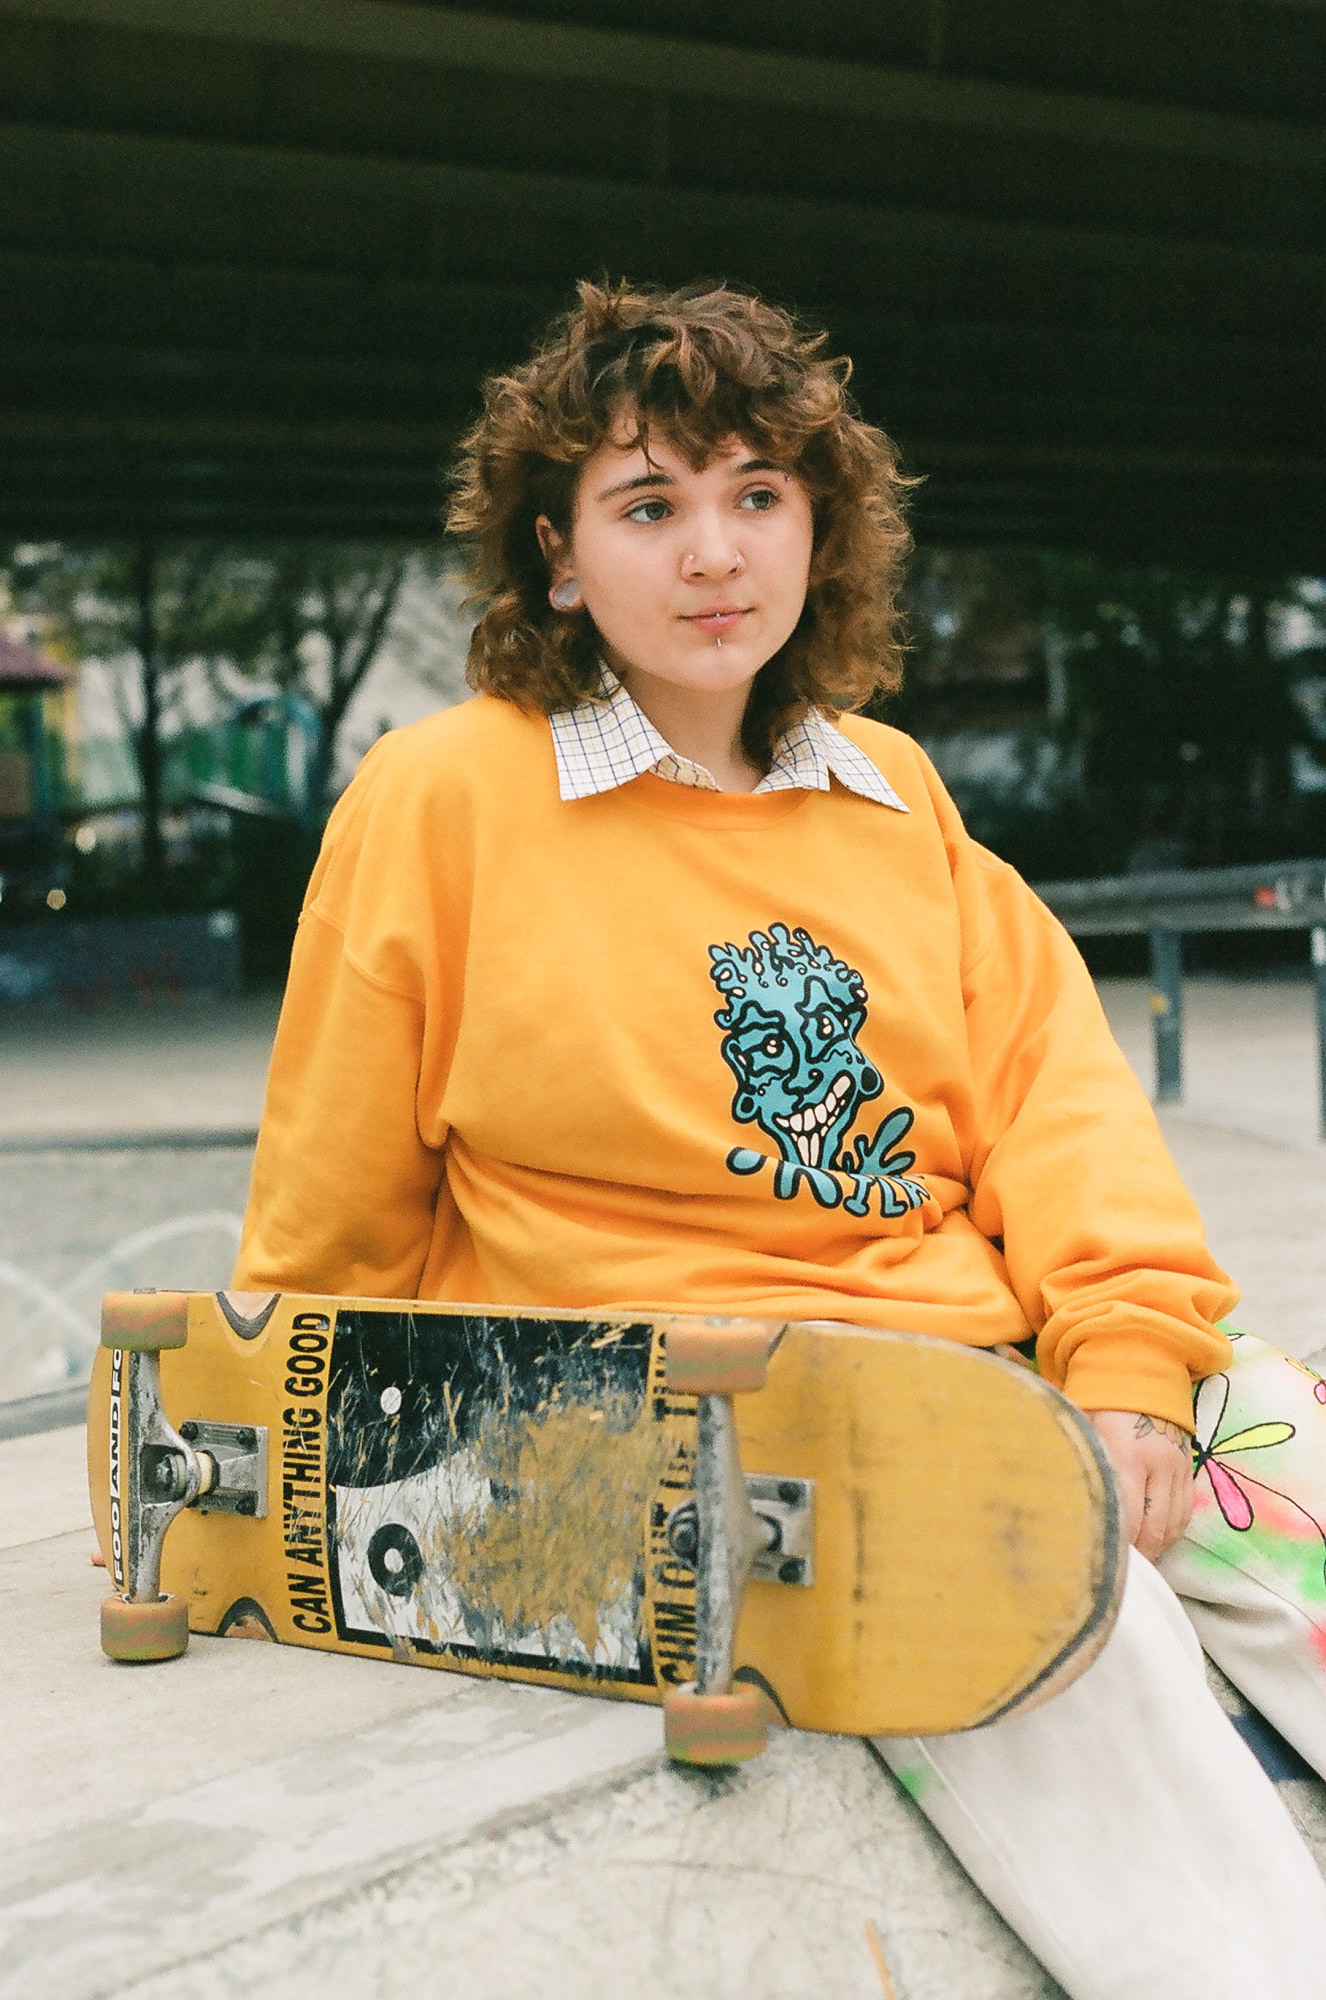 A woman with a yellow sweatshirt and a yellow skateboard